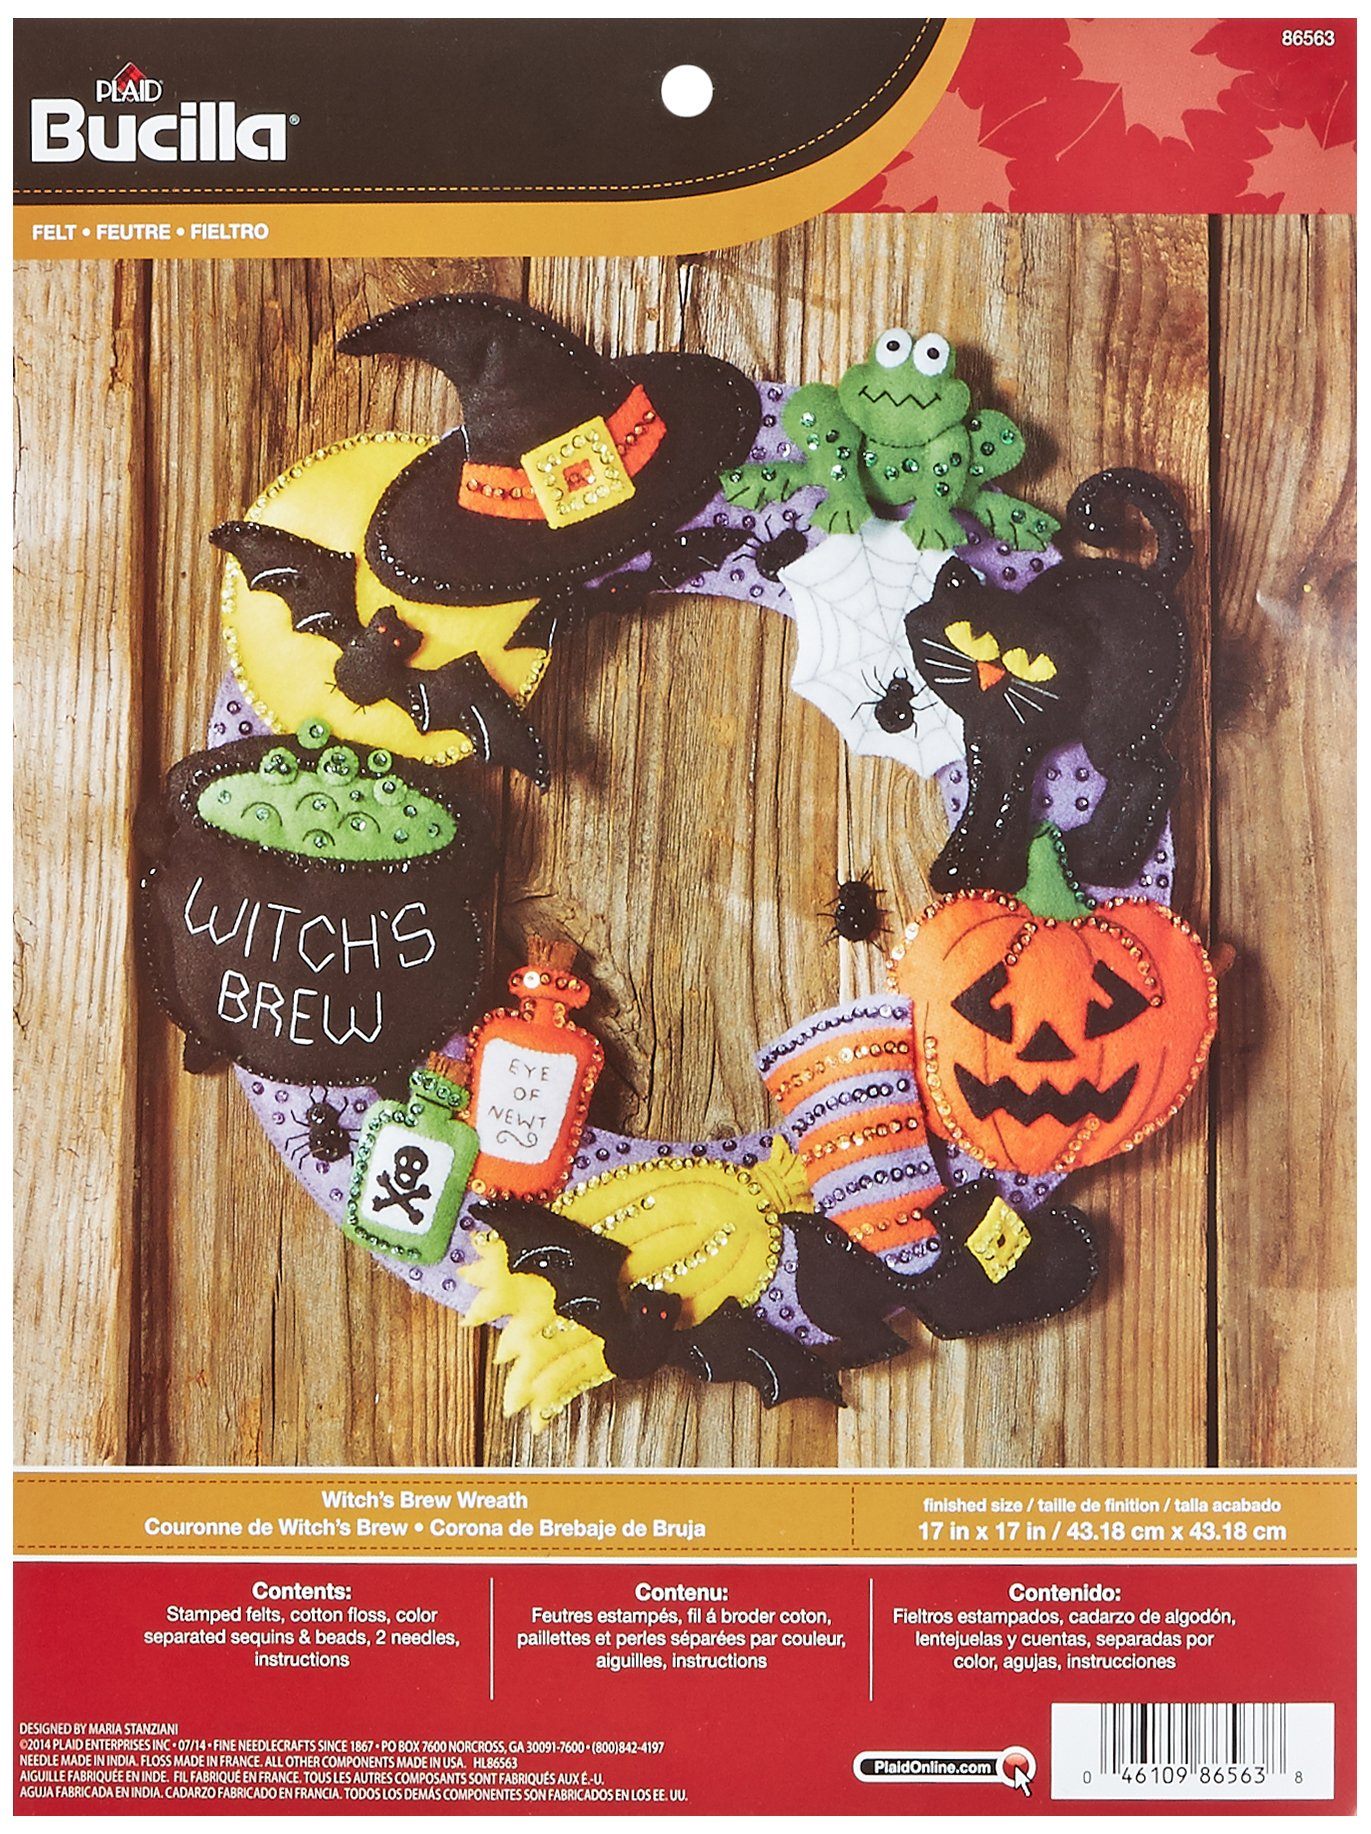 Bucilla Felt Applique Wall Hanging Wreath Kit, 17 by 17-Inch, 86563 Witchs